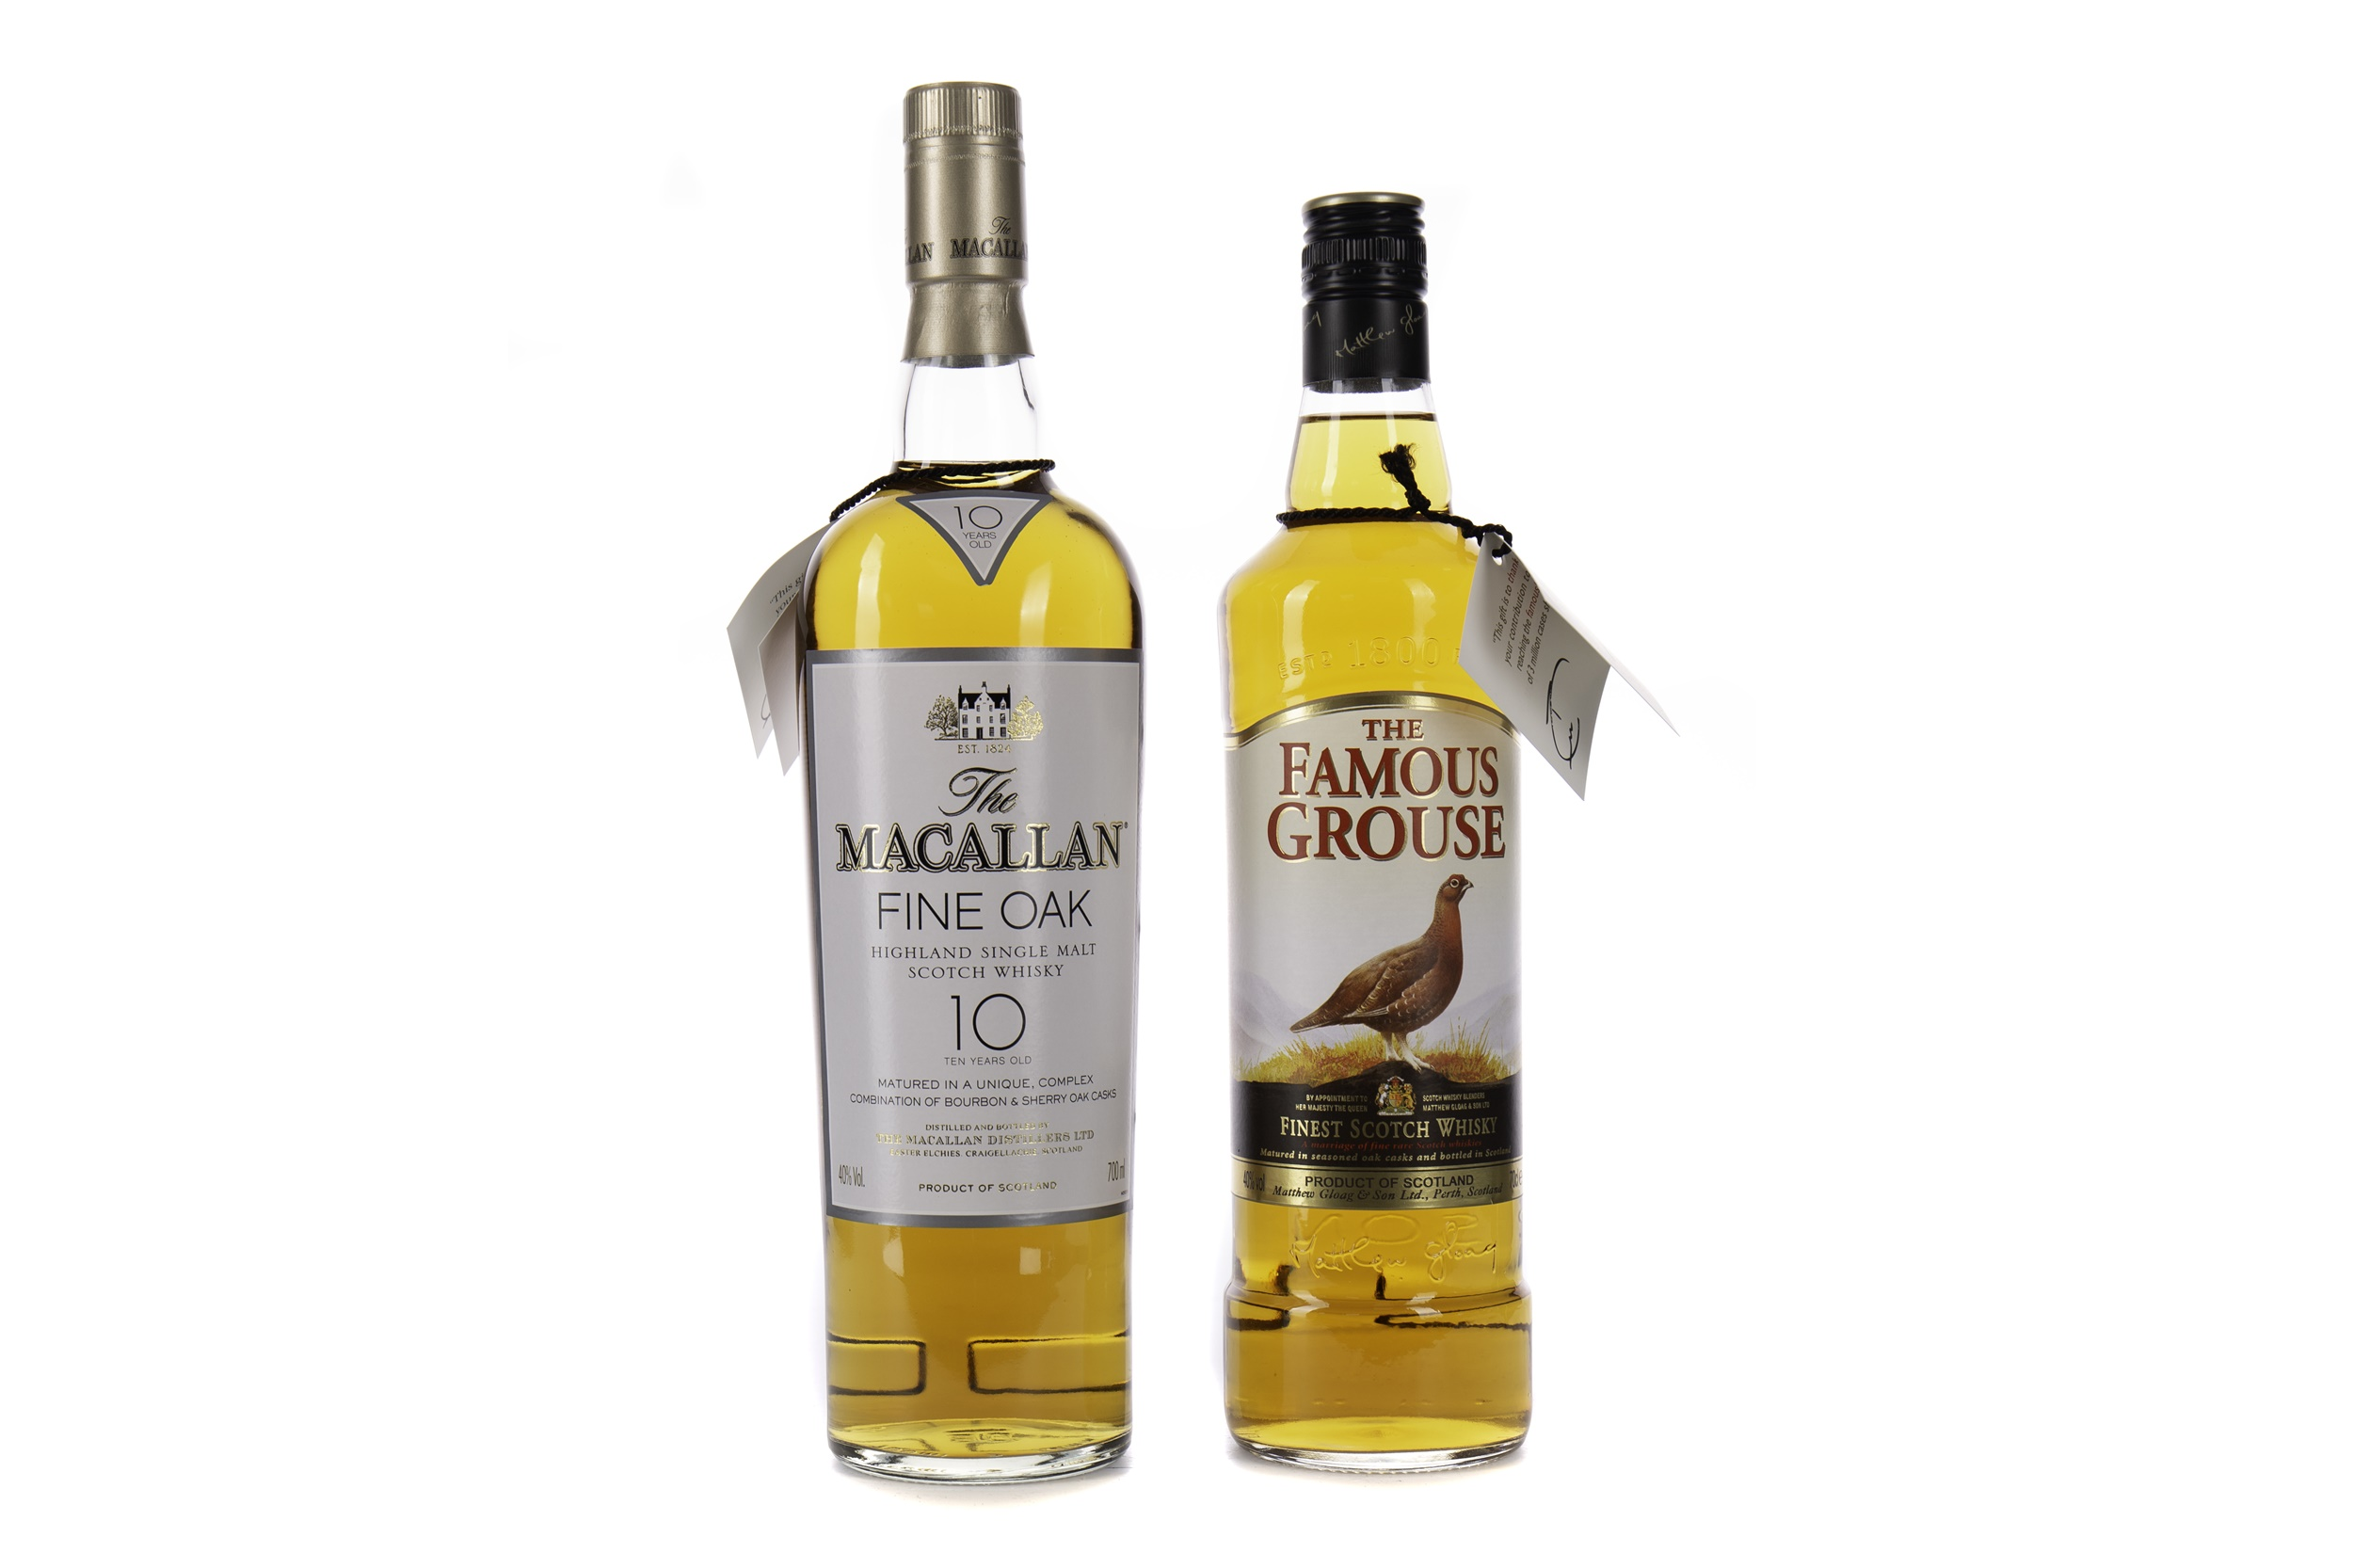 MACALLAN FINE OAK 10 YEARS OLD AND FAMOUS GROUSE